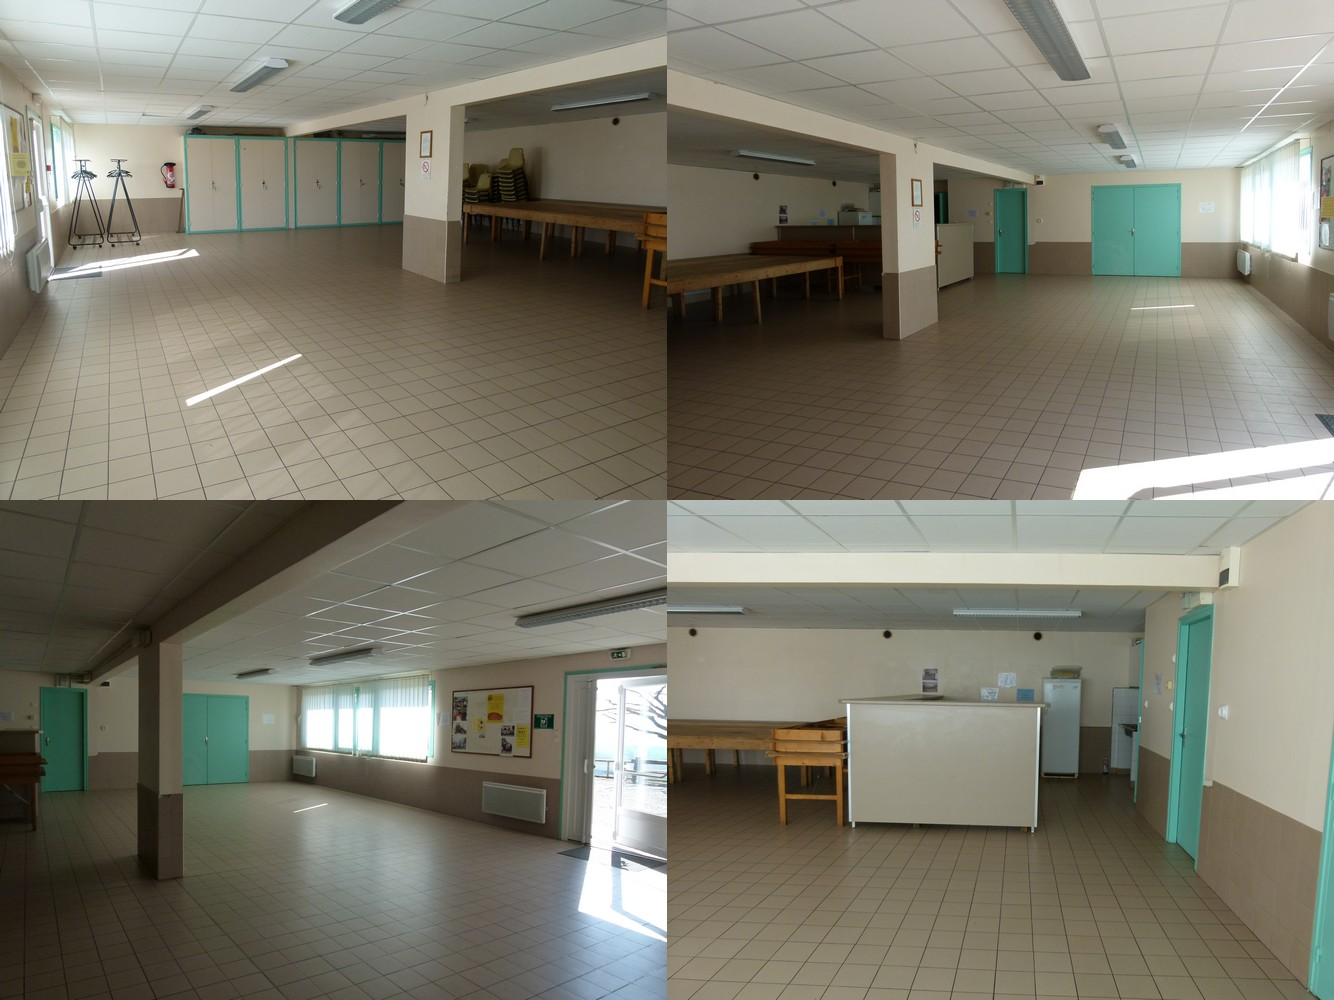 montage-salle-associations